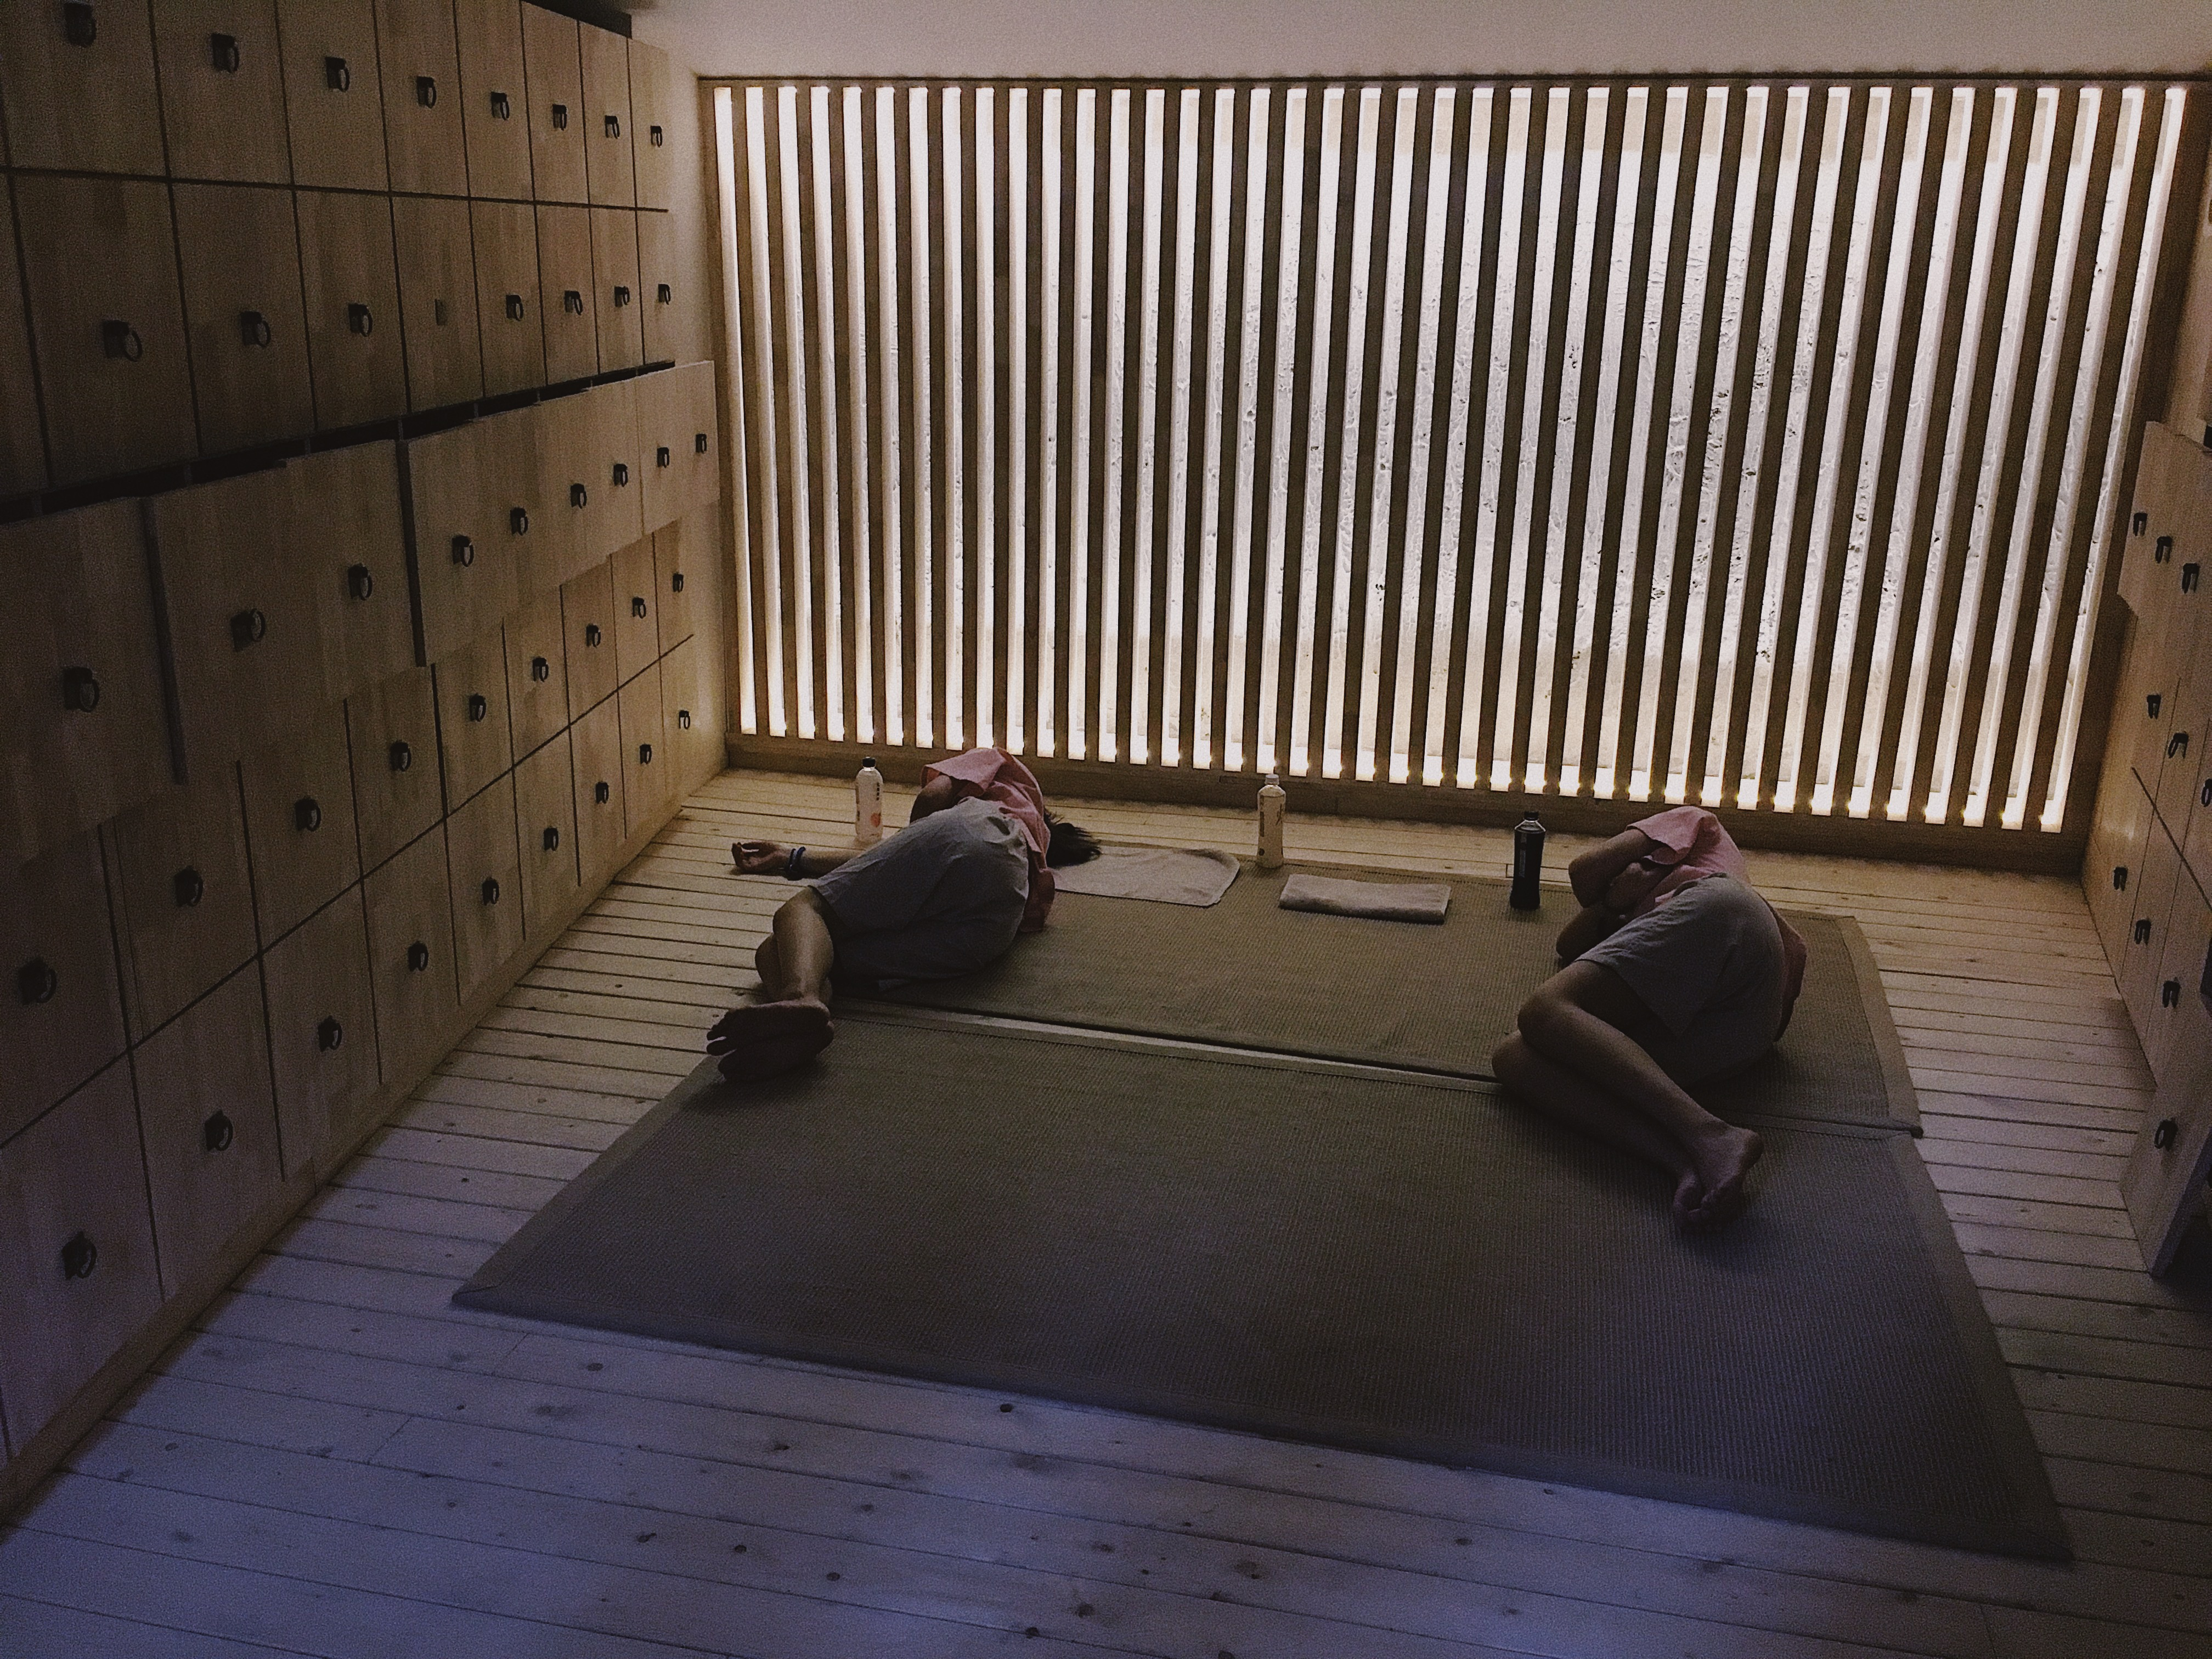 two person lying on area rug